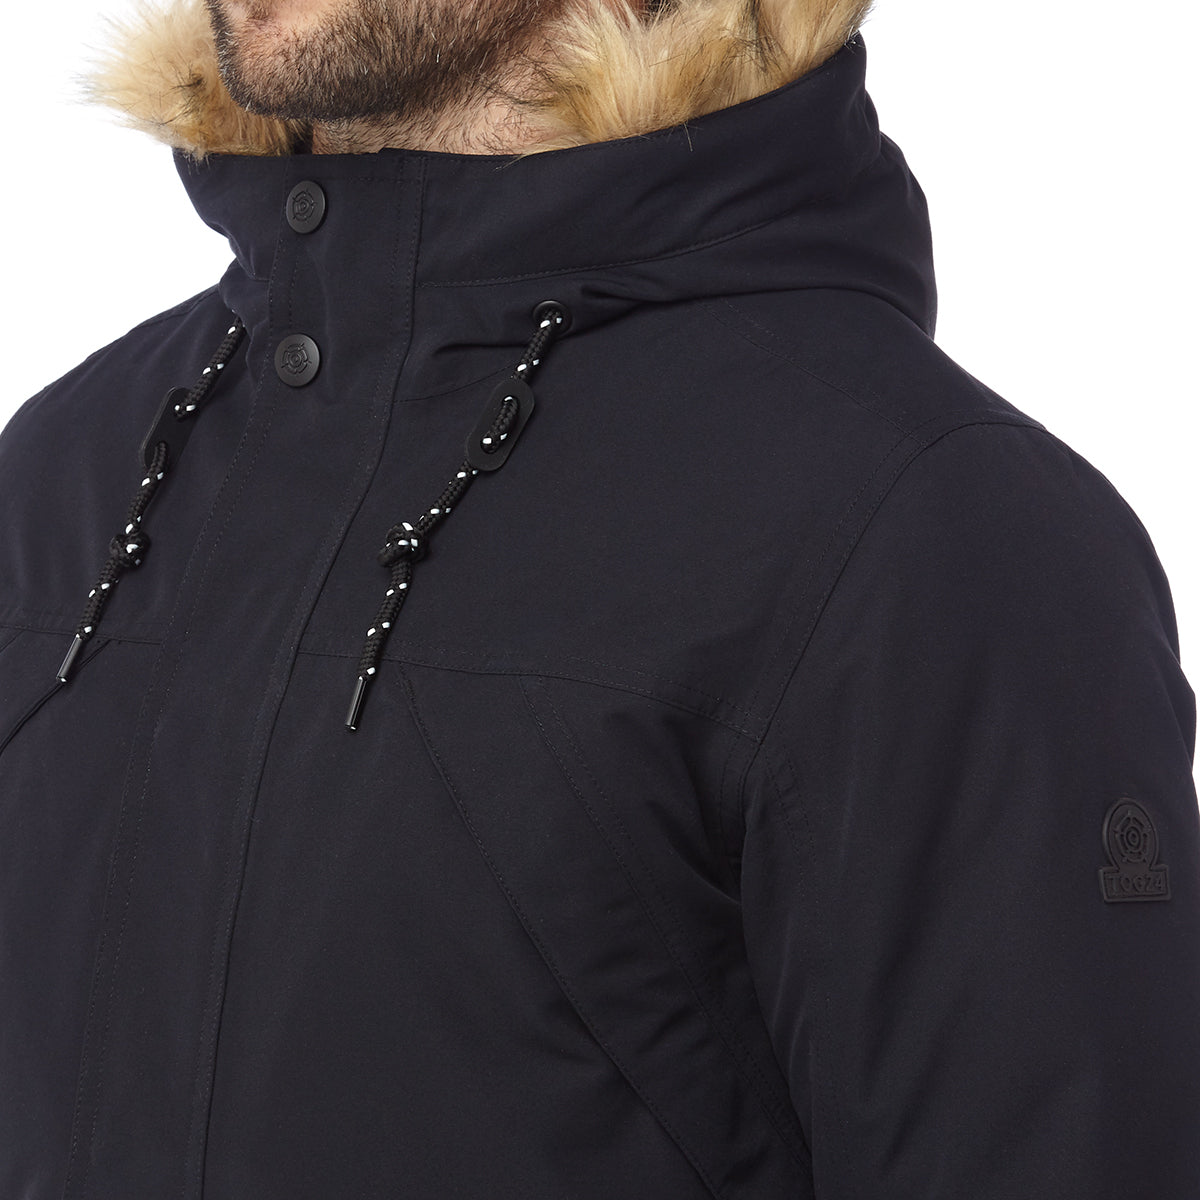 Premium Mens Waterproof Down Filled Parka - Black image 4